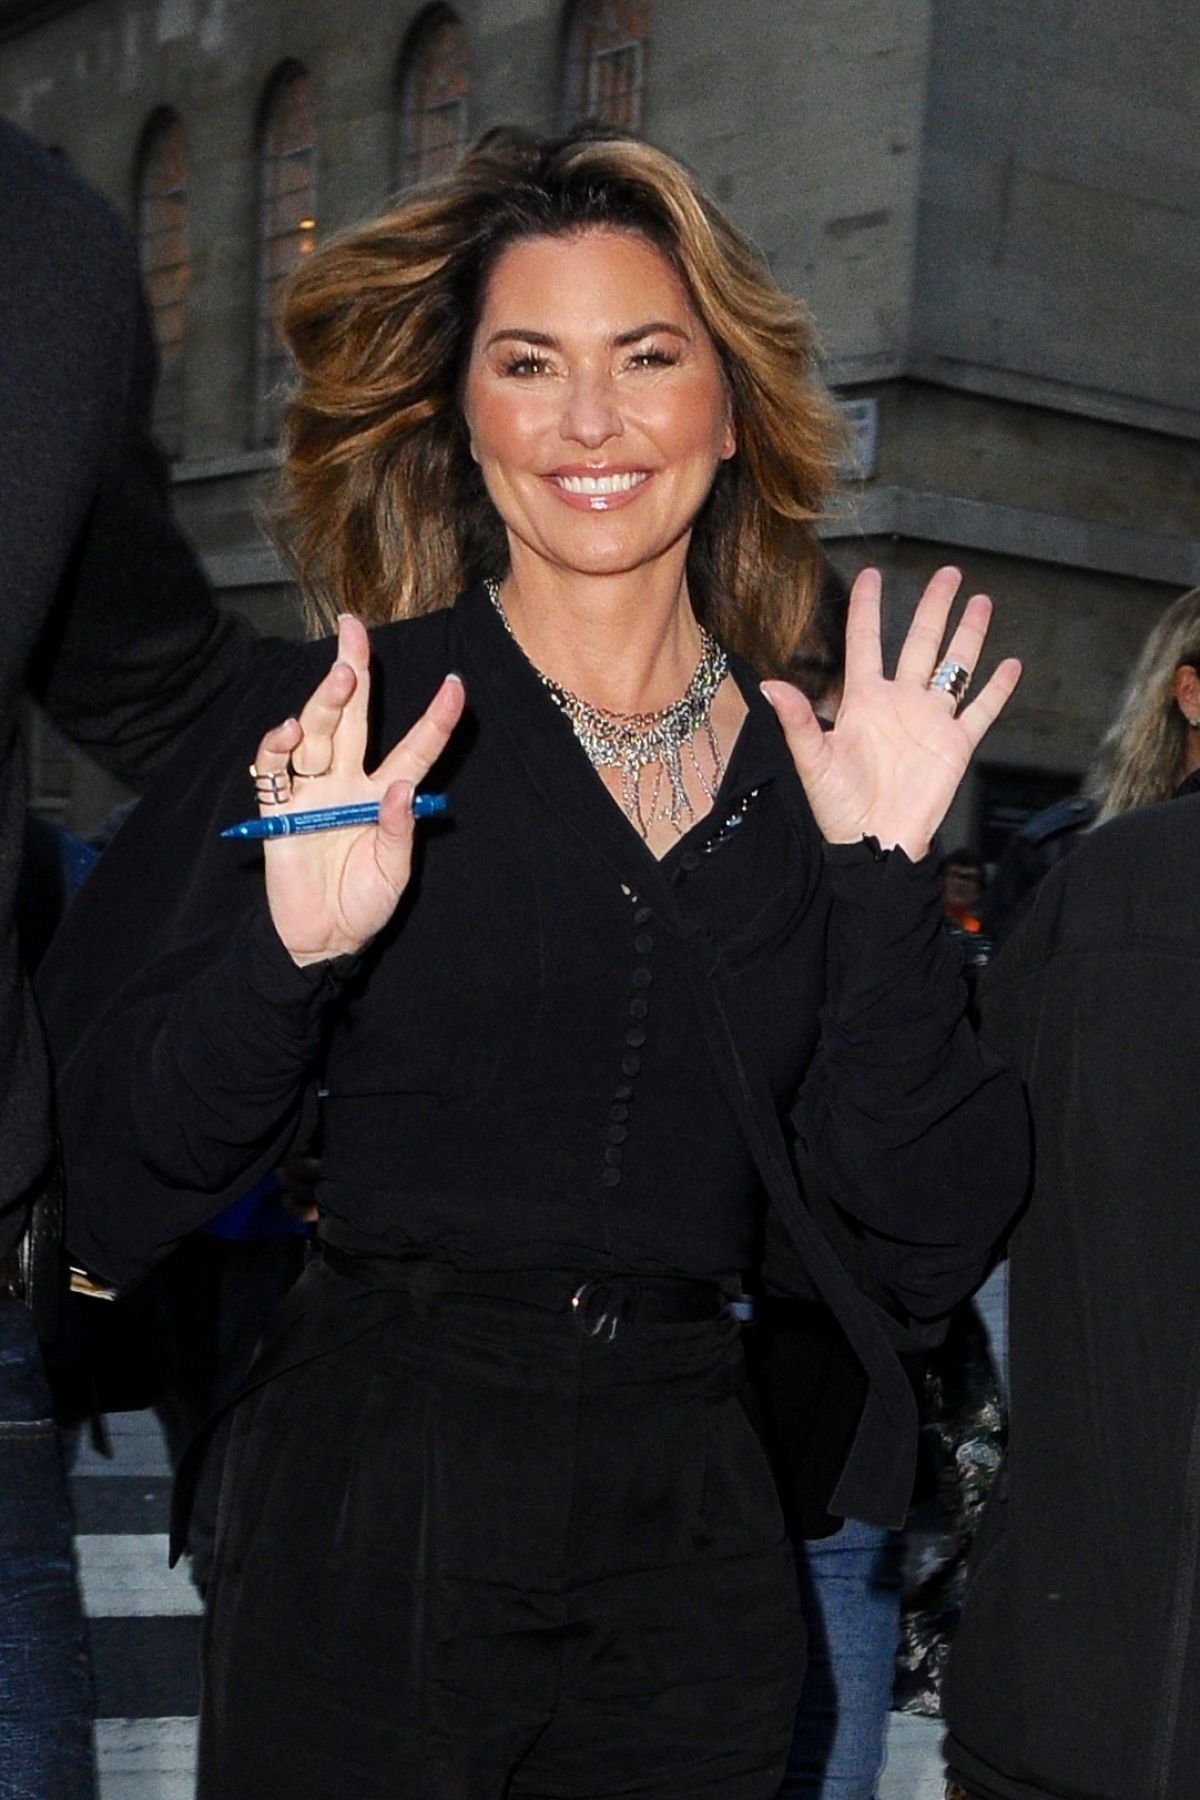 SHANIA TWAIN at The One Show in London 09/04/2017